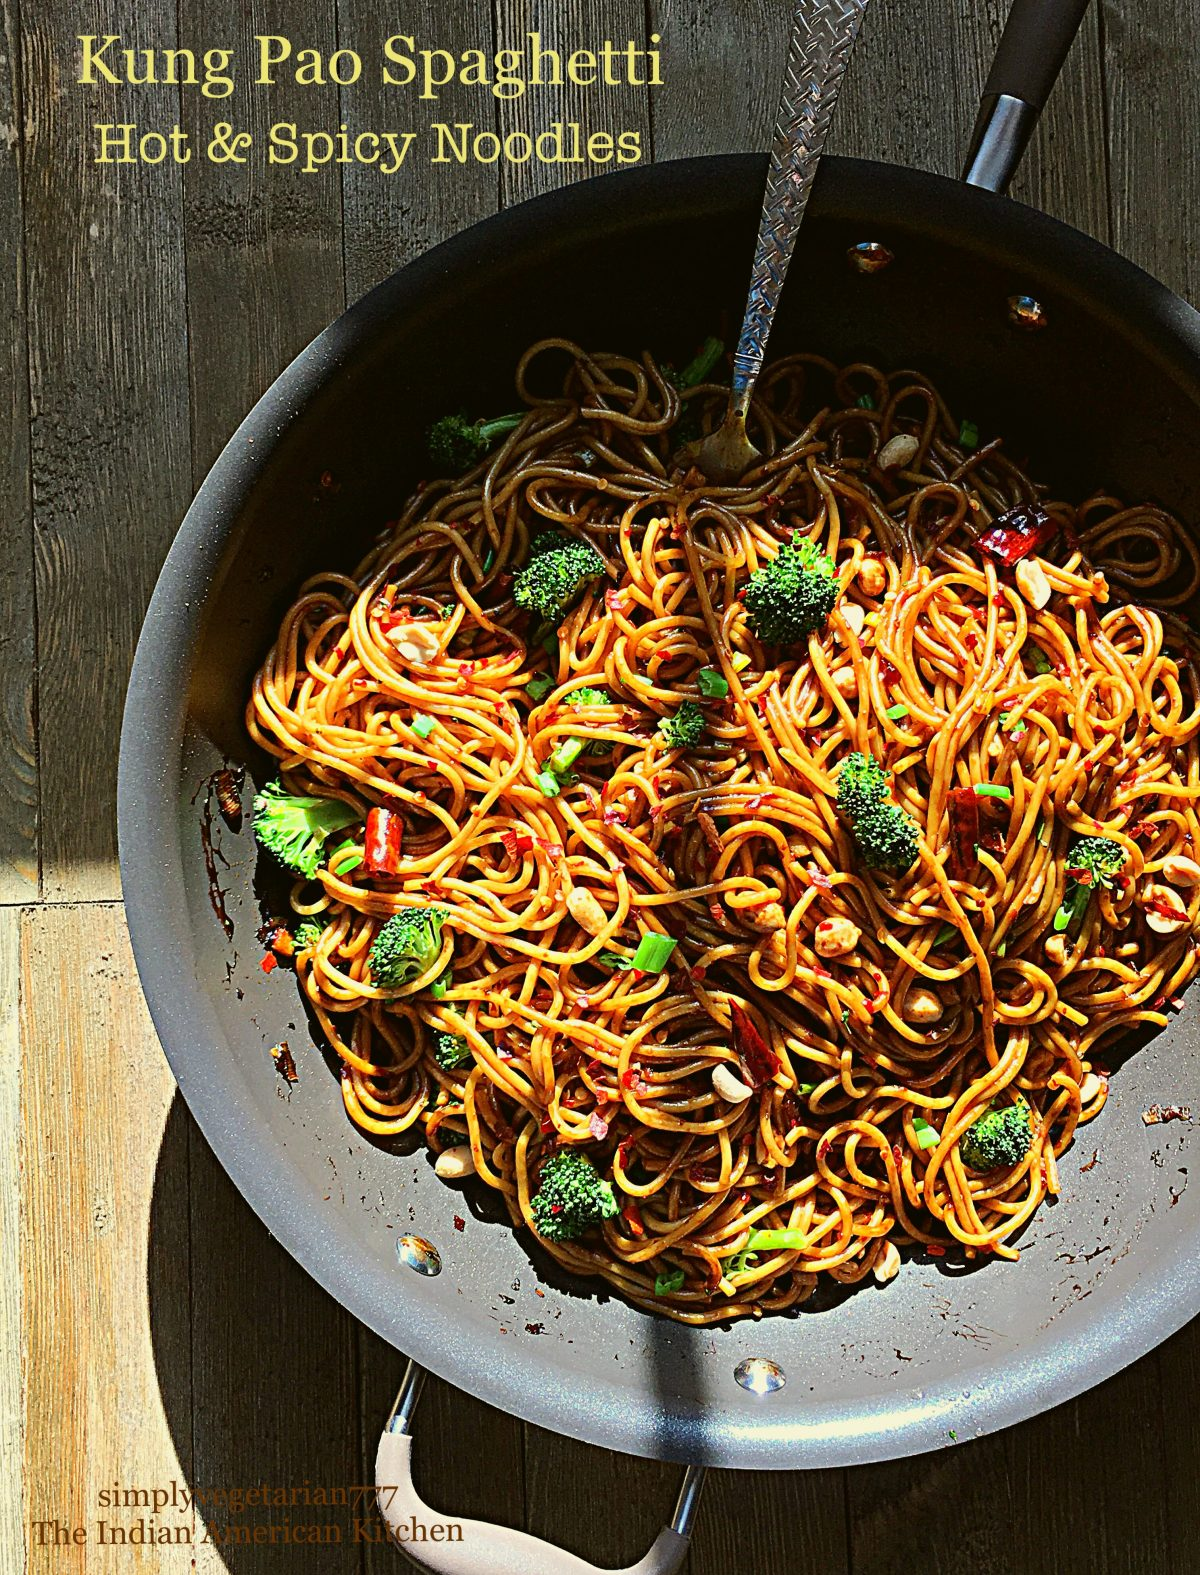 Kung Pao Spaghetti Hot Spicy Noodles is the perfect recipe that is easy, simple and oh-so delicious. It is made using Spaghetti with Asian flavors of spicy kung pao. A perfect Vegetarian Chinese Take Out can now be enjoyed at home. #vegetarianasianrecipes #kungpao #copycatCPKspaghetti #spicynoodles #spicyspaghetti #chinesetakeoutrecipes